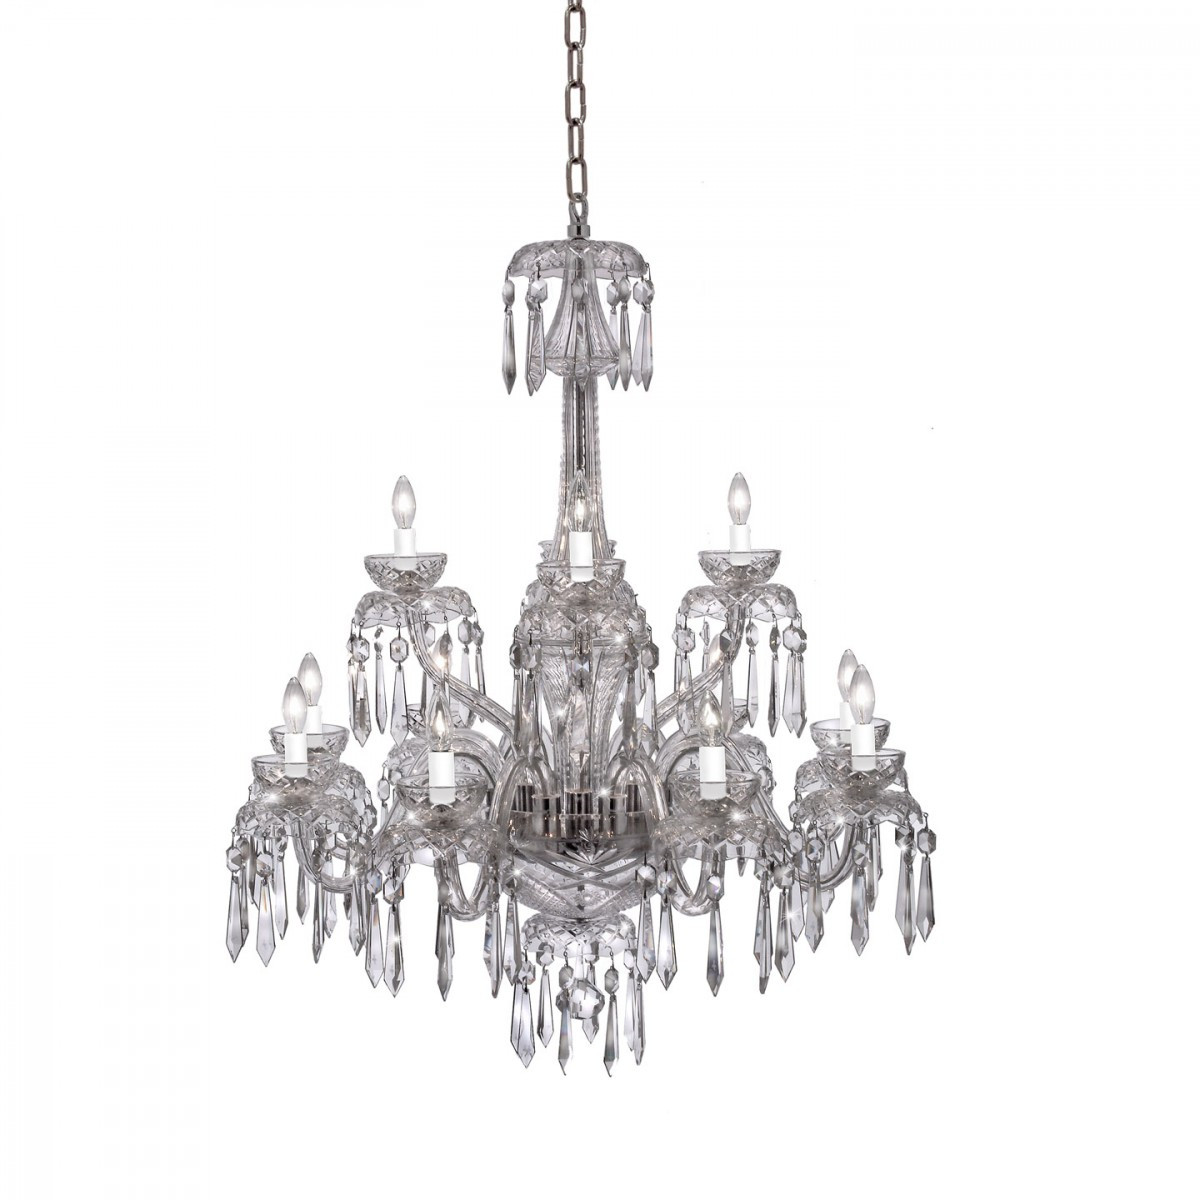 waterford balmoral vase 12 of powerscourt 12 arm chandelier waterford us intended for powerscourt 12 arm chandelier